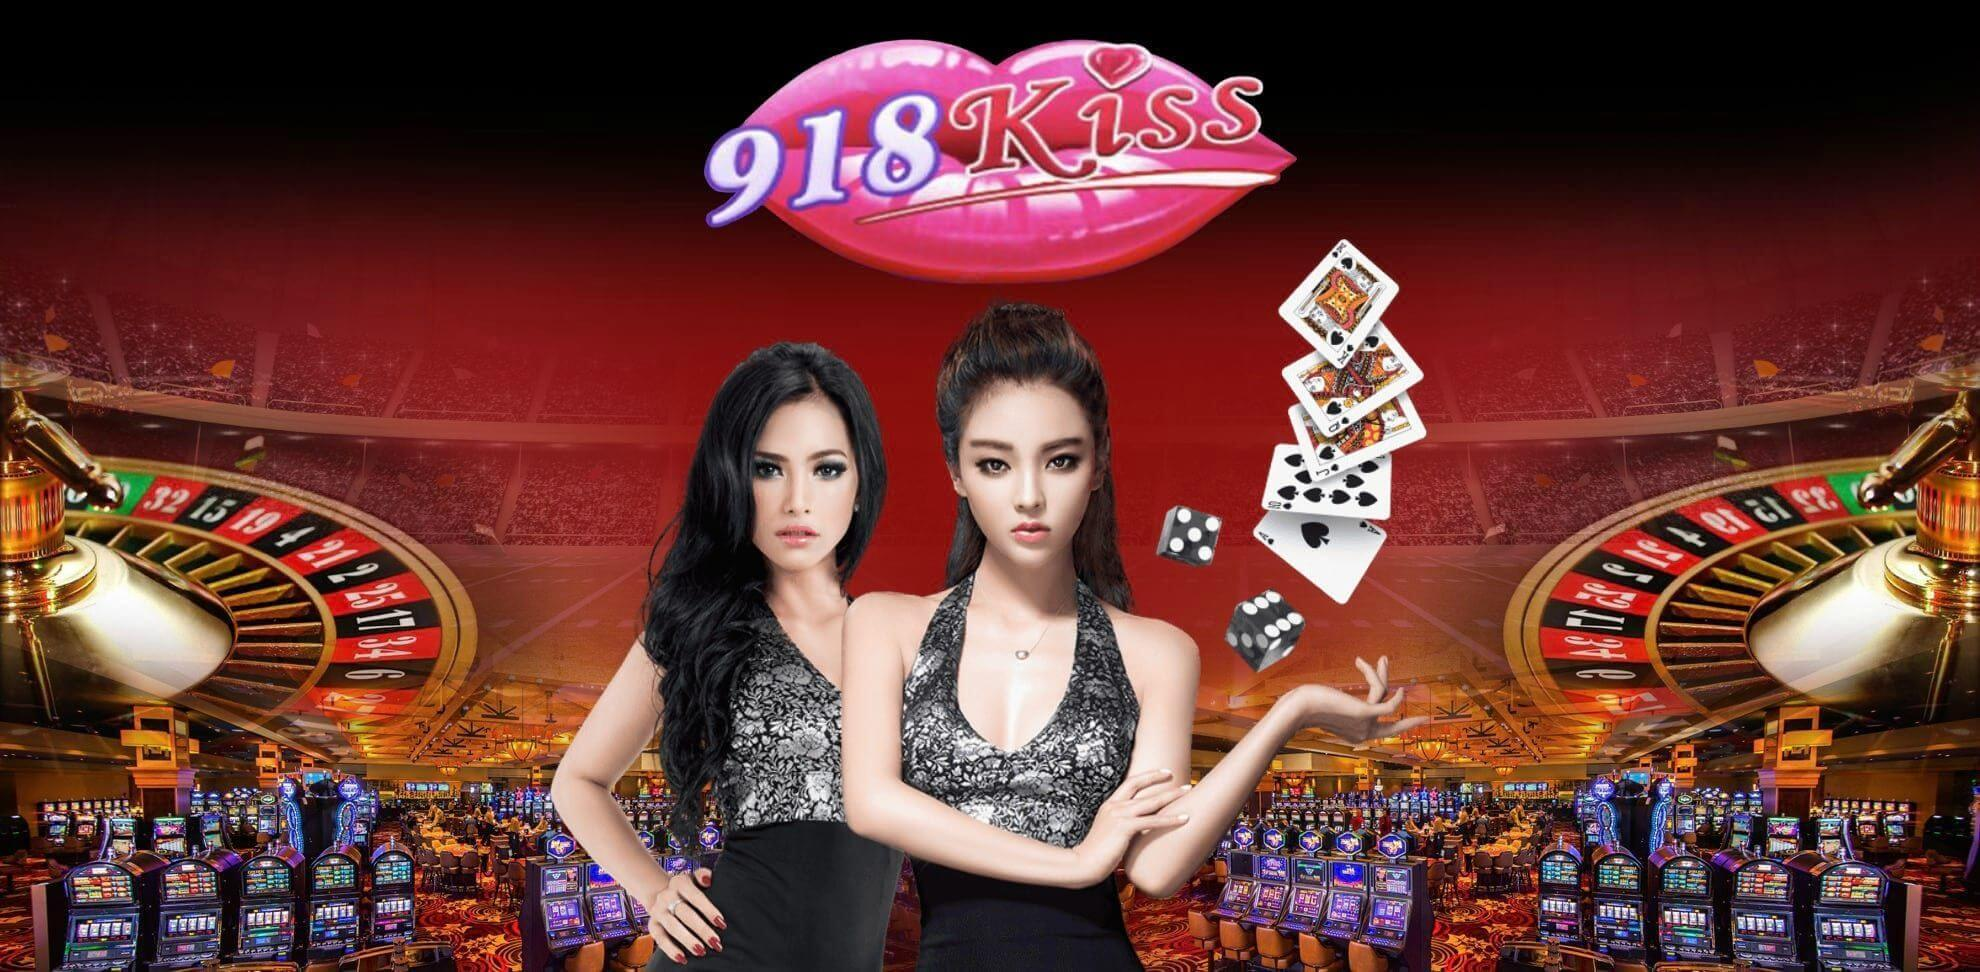 M 918kisses Download APK Free 2021 New Version For Android & IOS